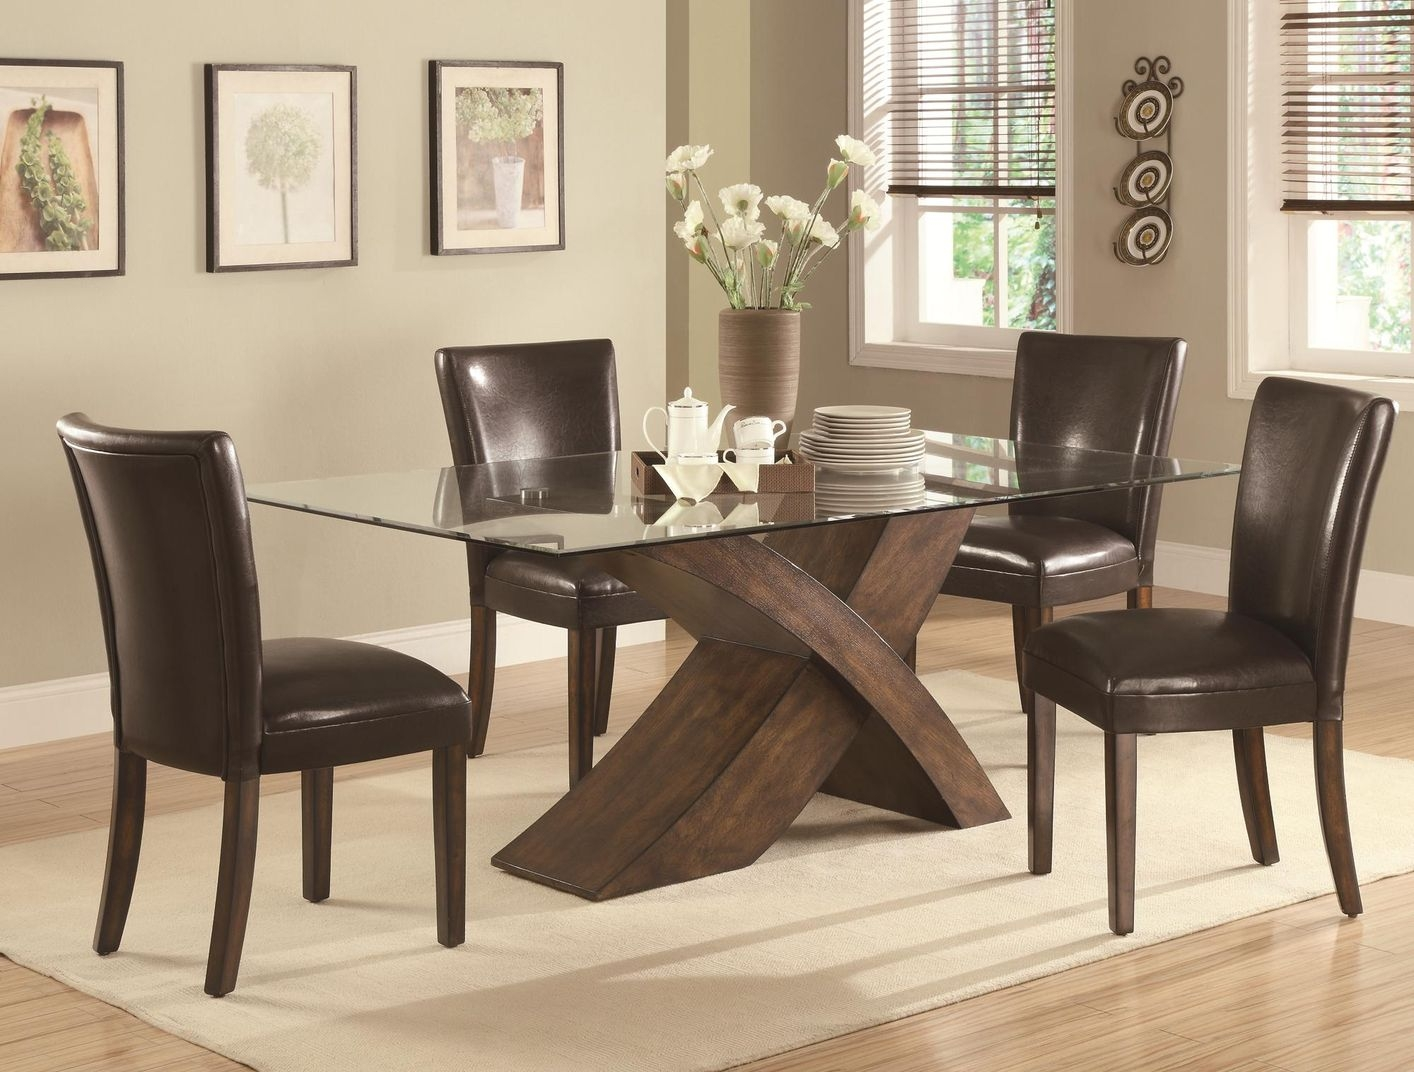 Permalink to Wood And Glass Kitchen Table Sets